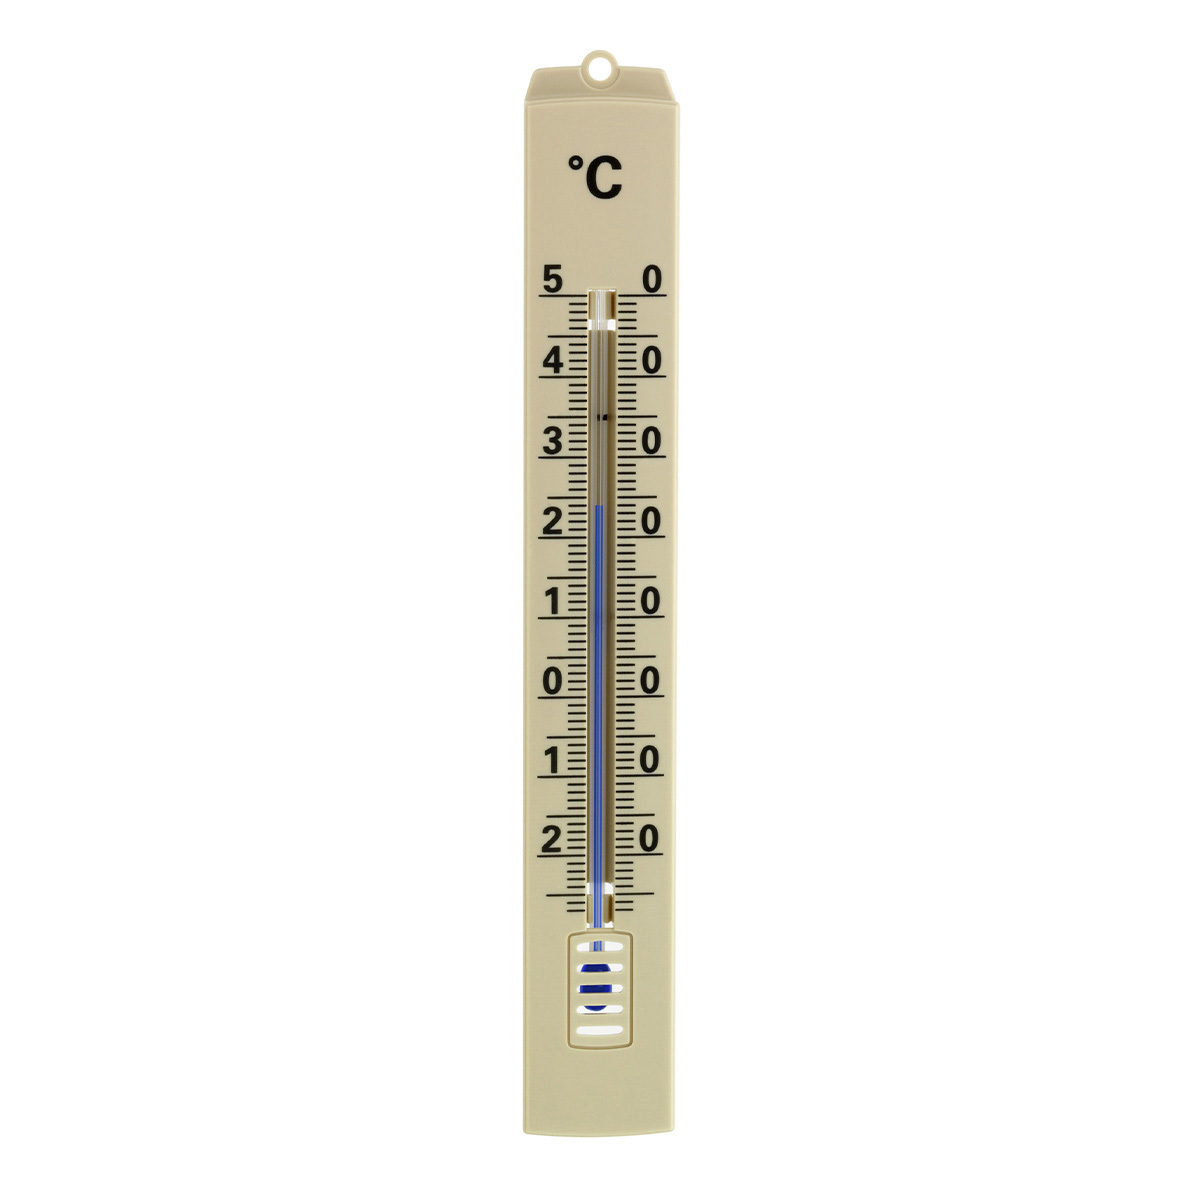 12-3008-08-analoges-innen-aussen-thermometer-1200x1200px.jpg